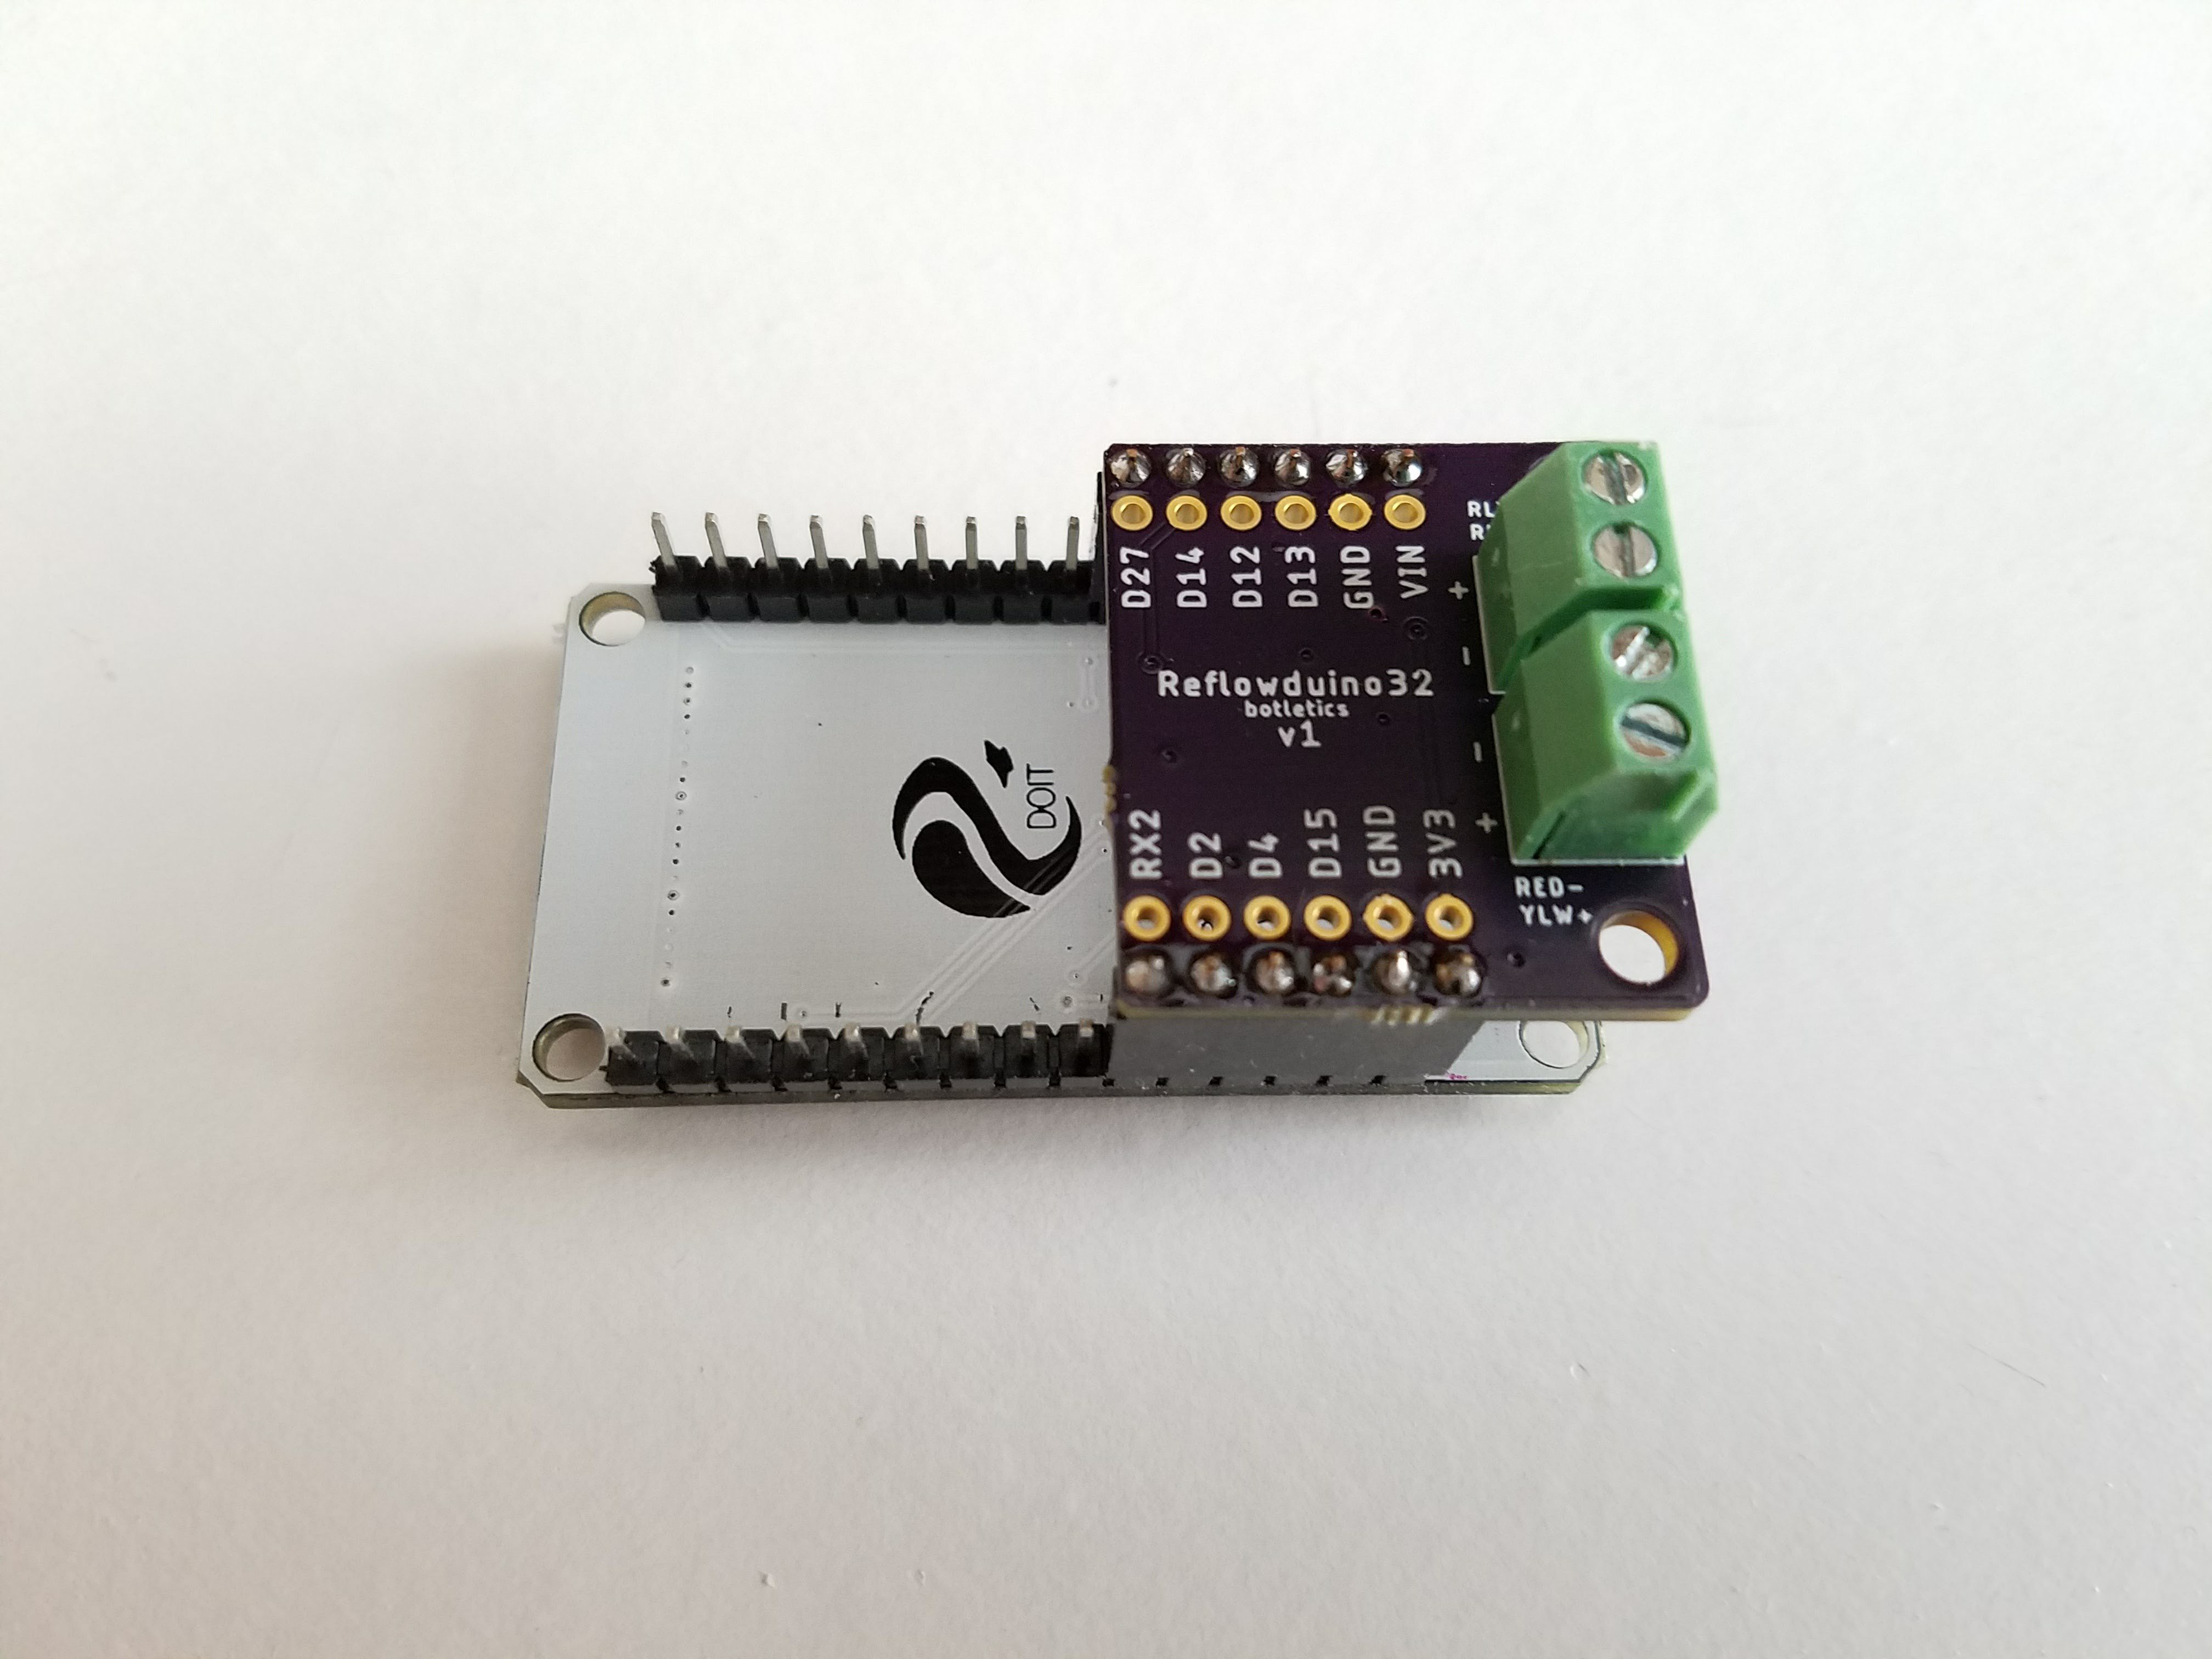 Reflowduino Wireless Reflow Controller Ecosystem Details Doityourself Diy Customized Circuit Board Pcb Making Do It Development To Give Convenient Thermocouple And Relay Interface For Easy Control While Still Communicating Over Bluetooth Low Energy